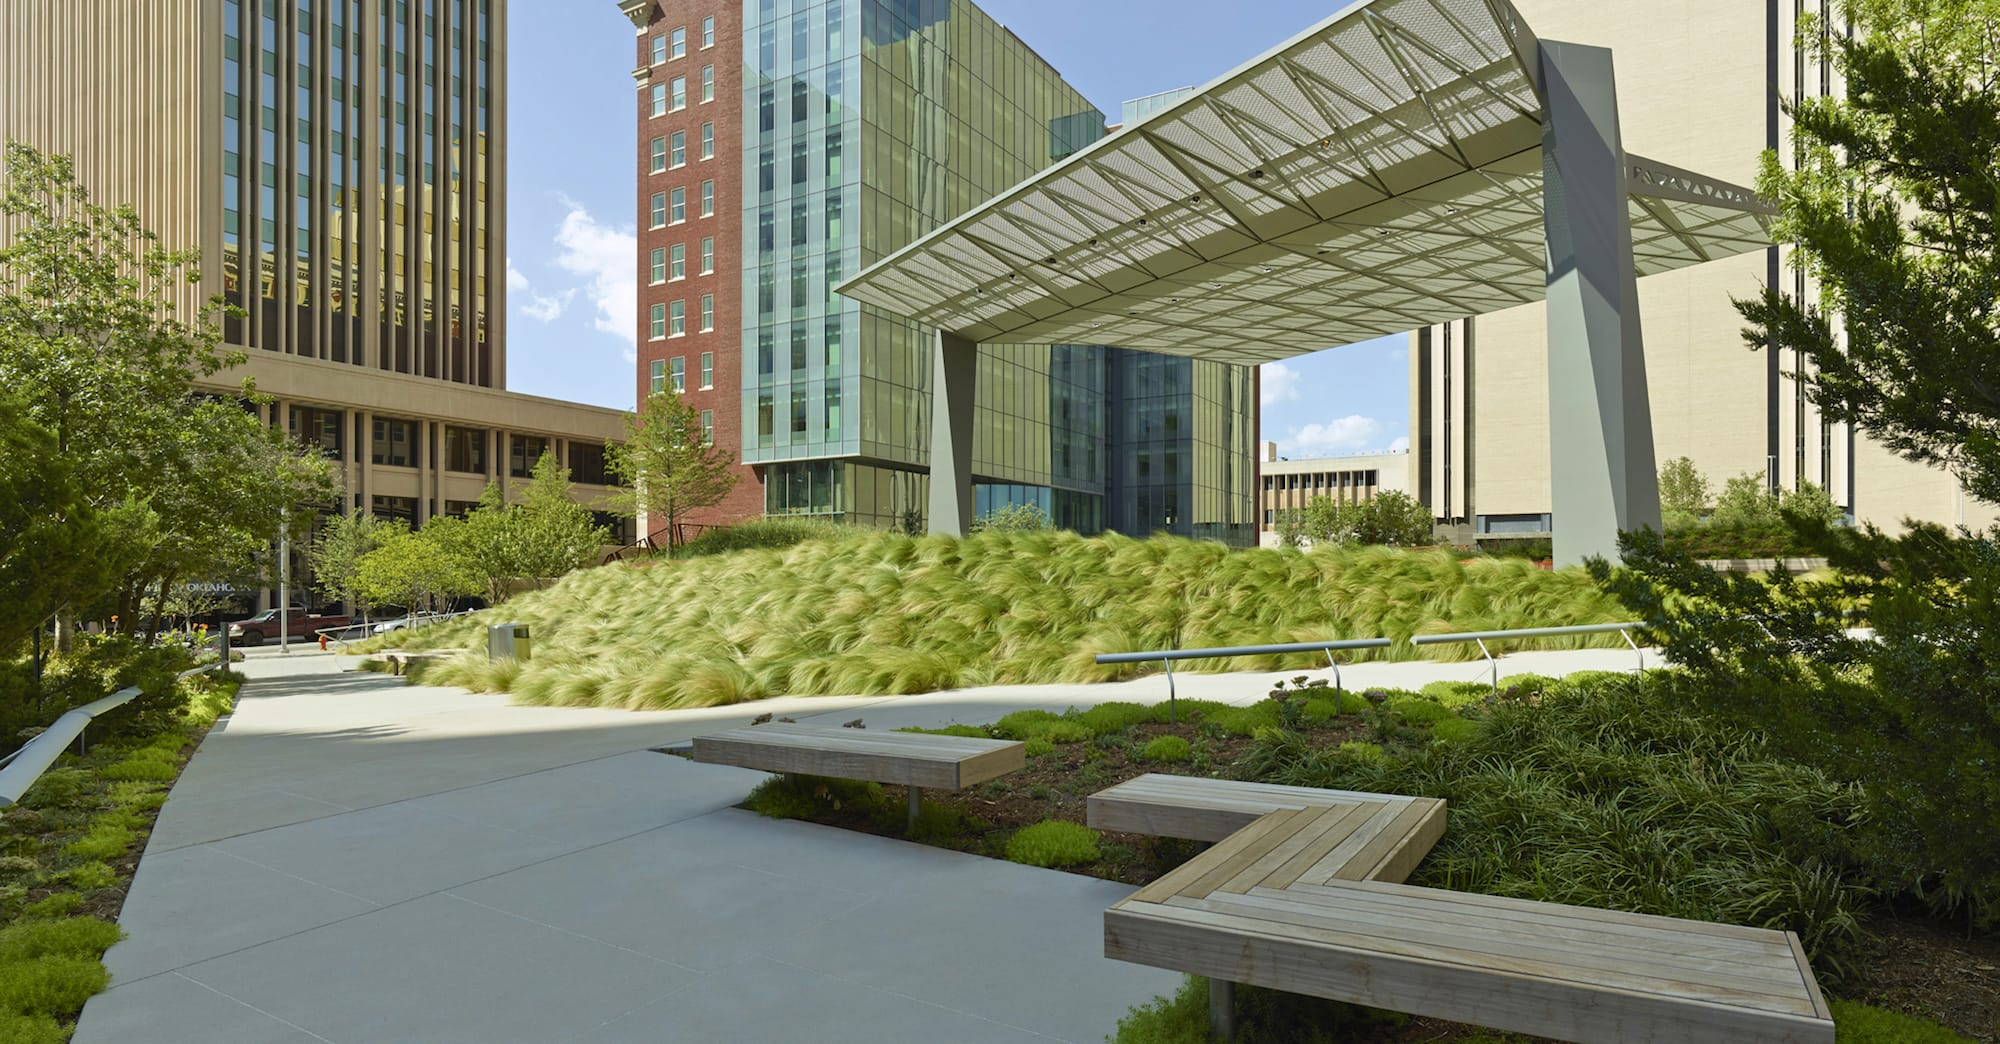 Sandridge Energy Commons By Hoerr Schaudt Landscape Architects